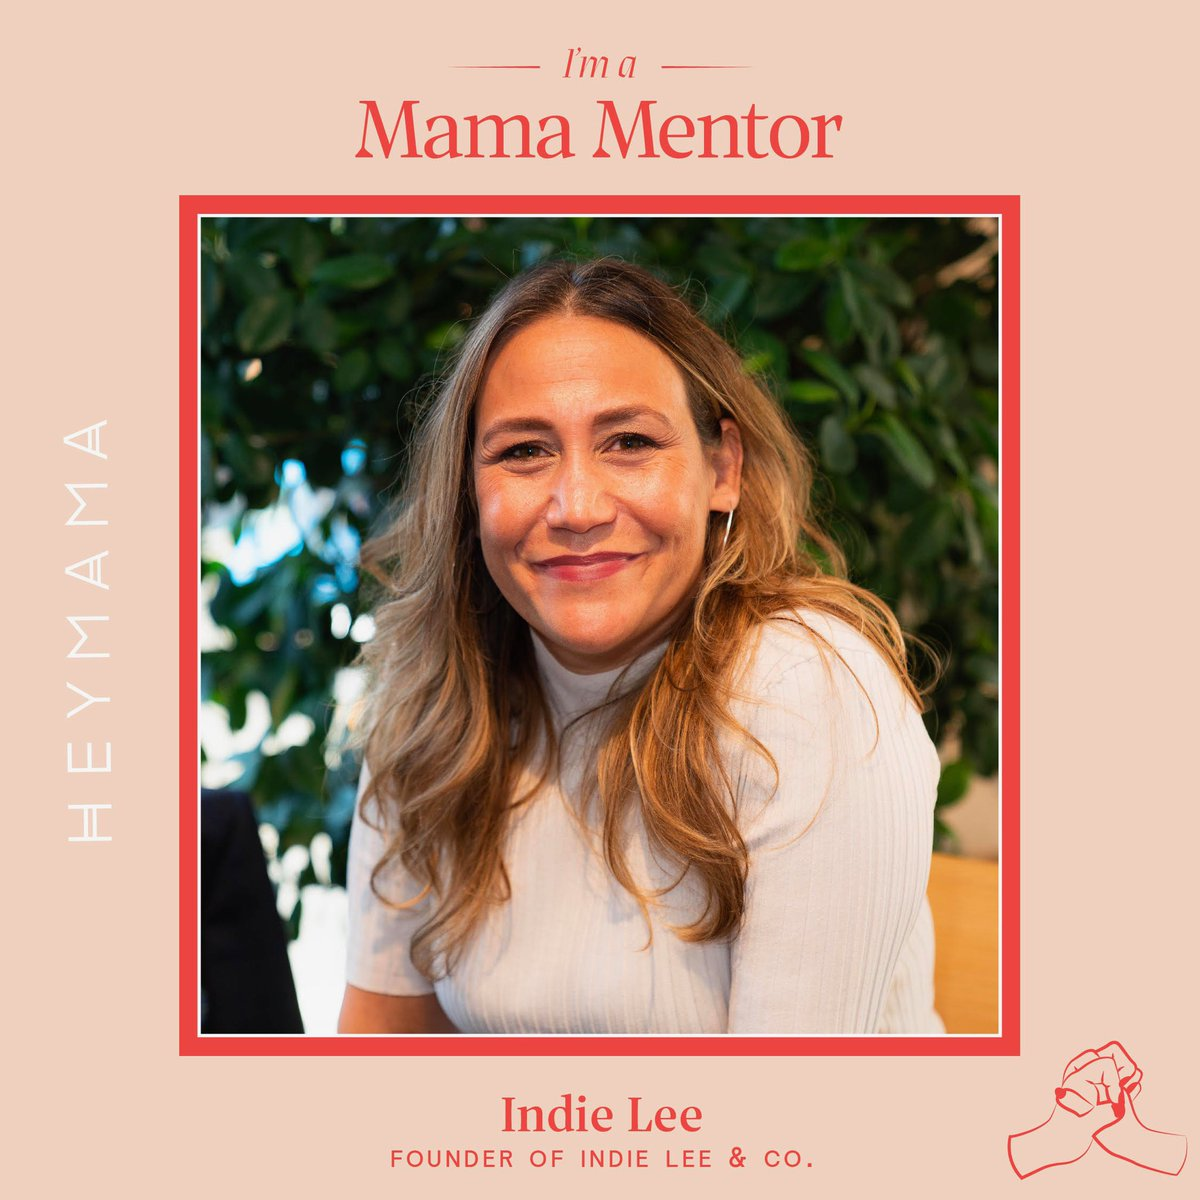 So honored and thrilled to be a mentor with @heymamaco this fall! As part of HeyMama's mentor series I'll be mentoring 3 HeyMama members. To find out more head over to @heymamaco's page! 😊❤️ https://t.co/gztJBLTOJb